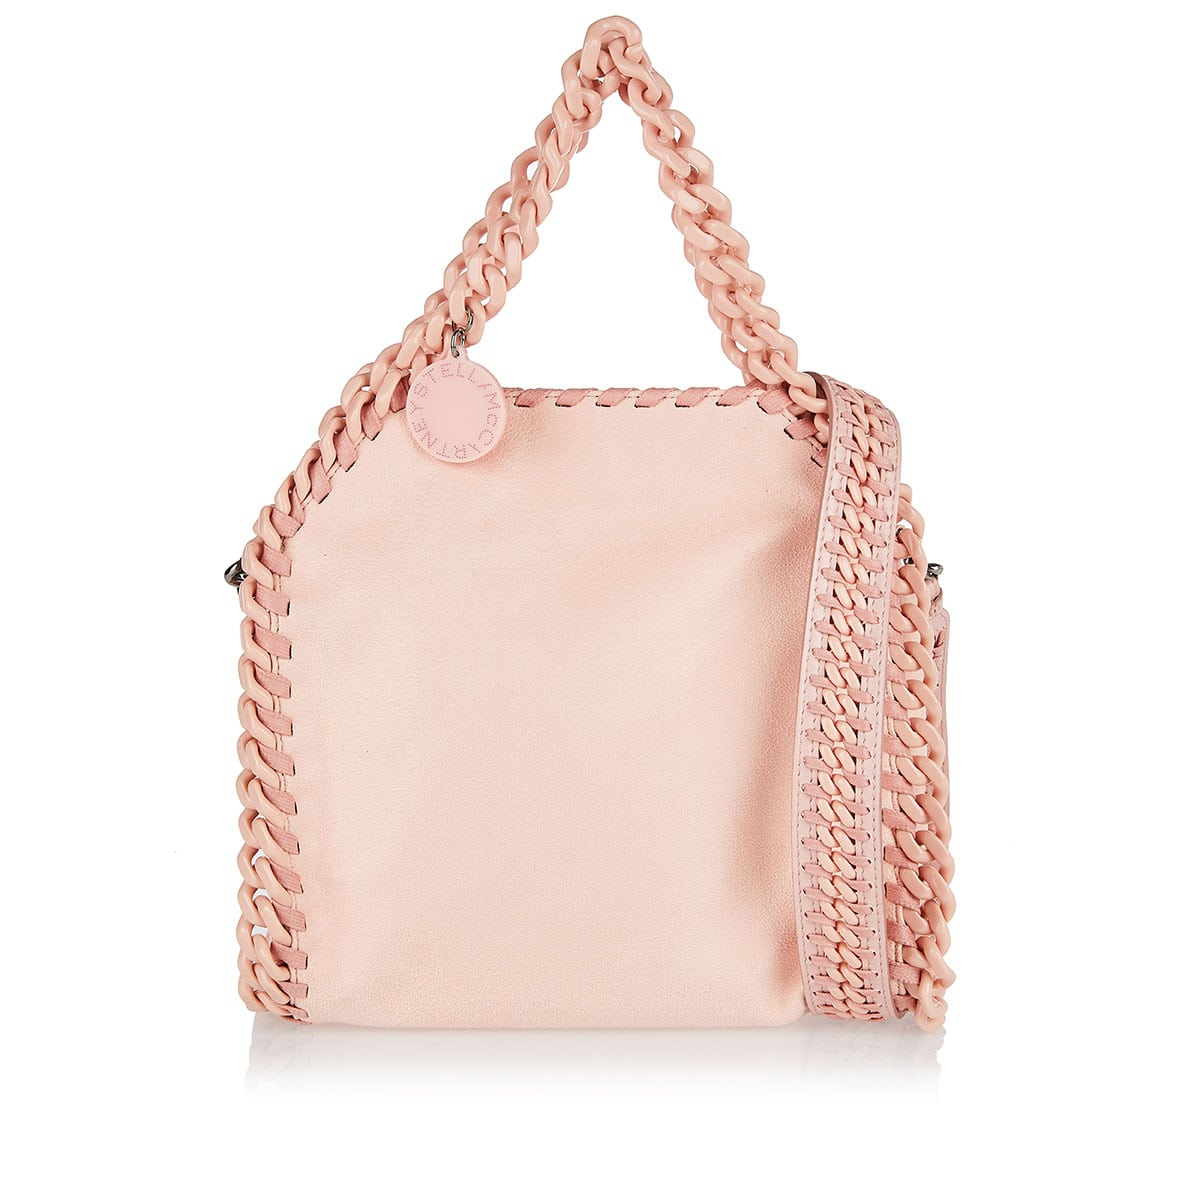 e0908d523cc955 Falabella Candy mini tote bag | LuisaWorld